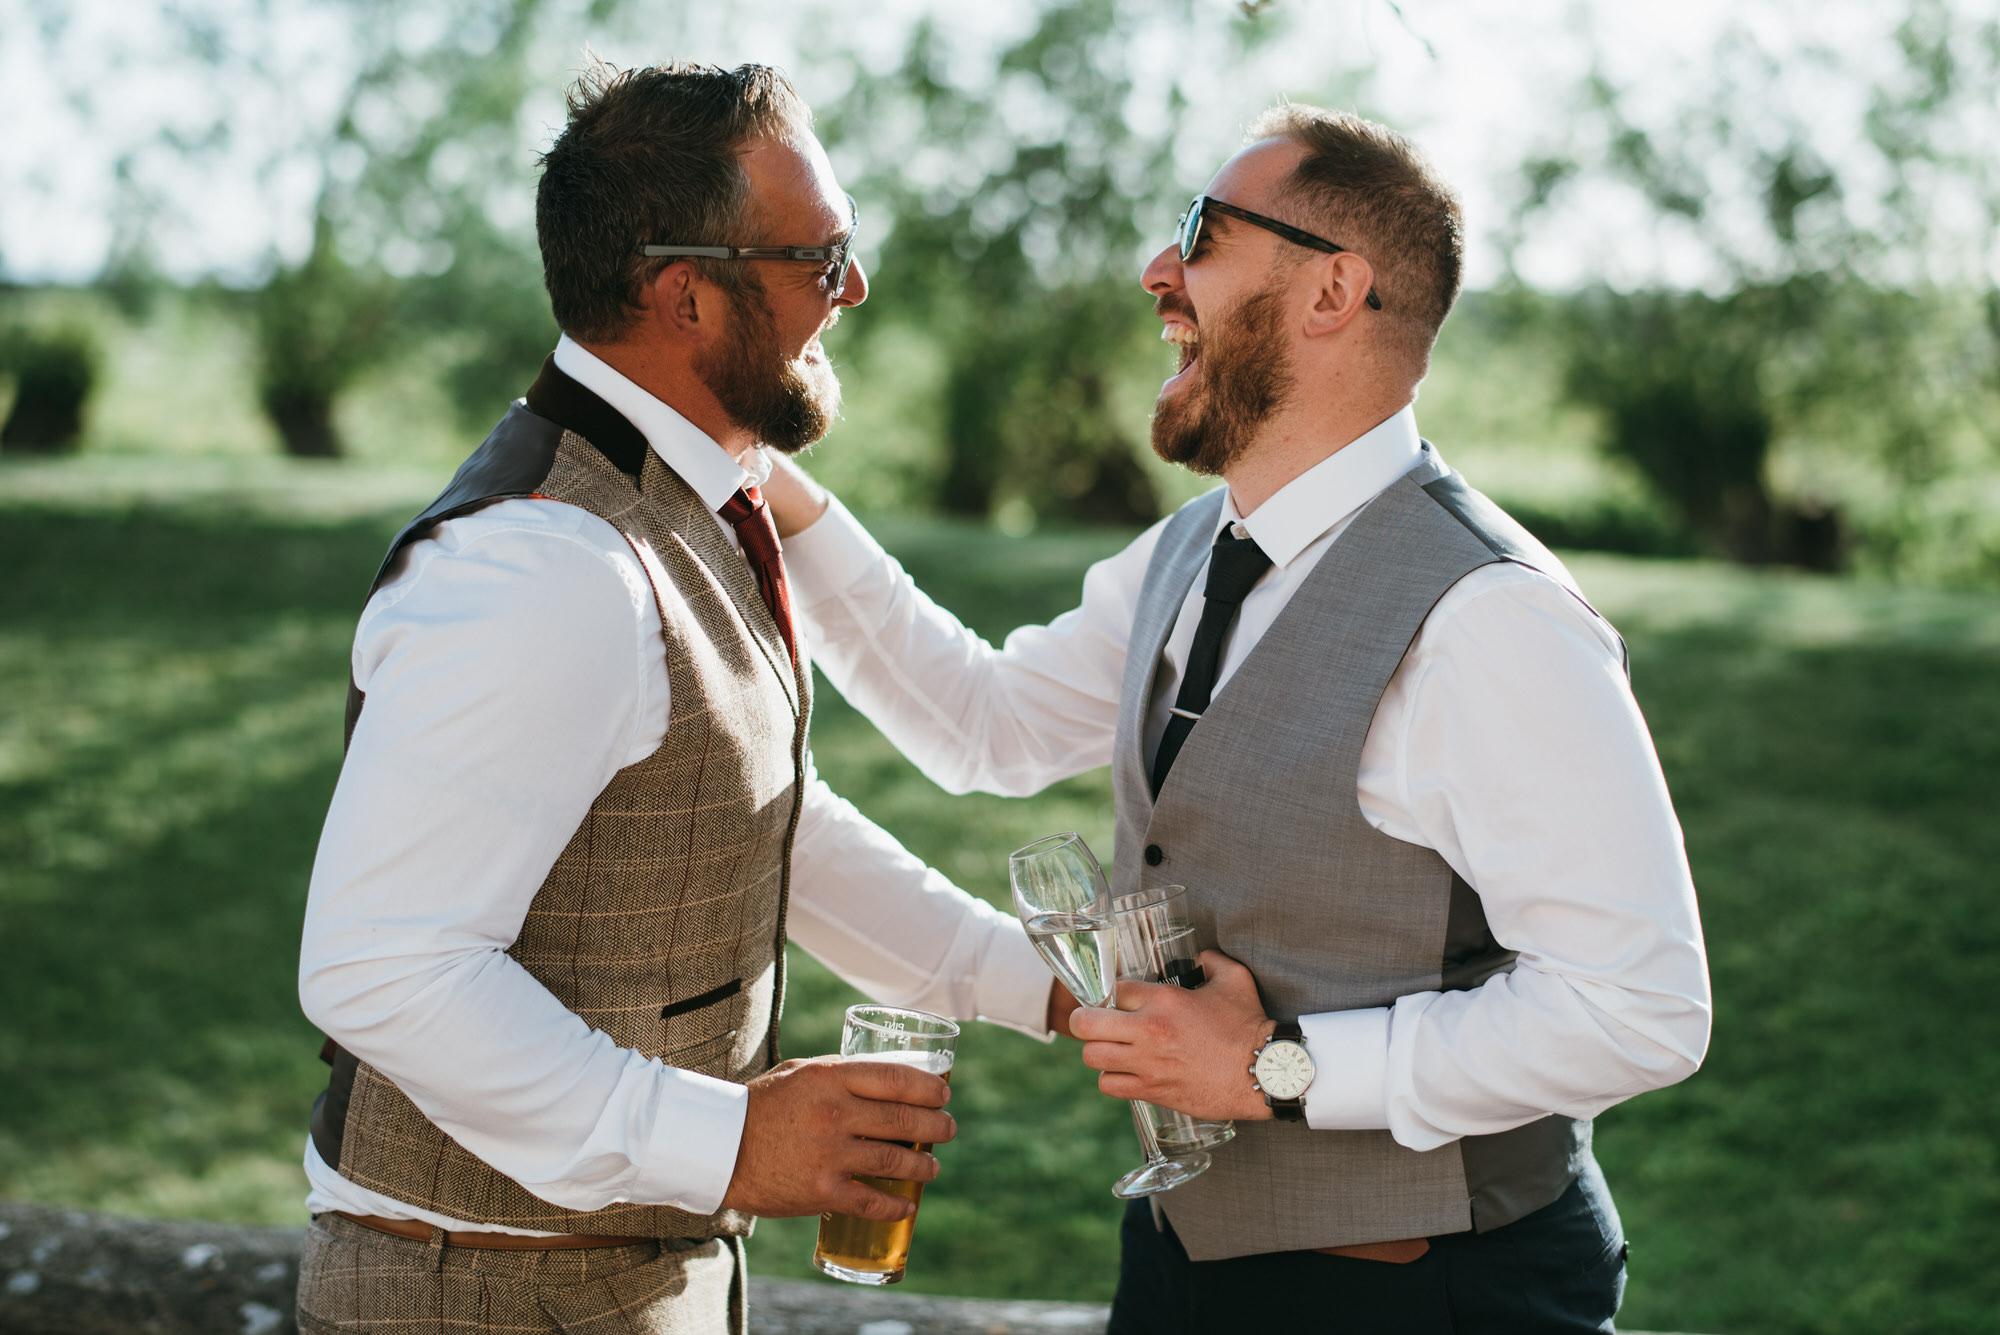 Two guys laughing